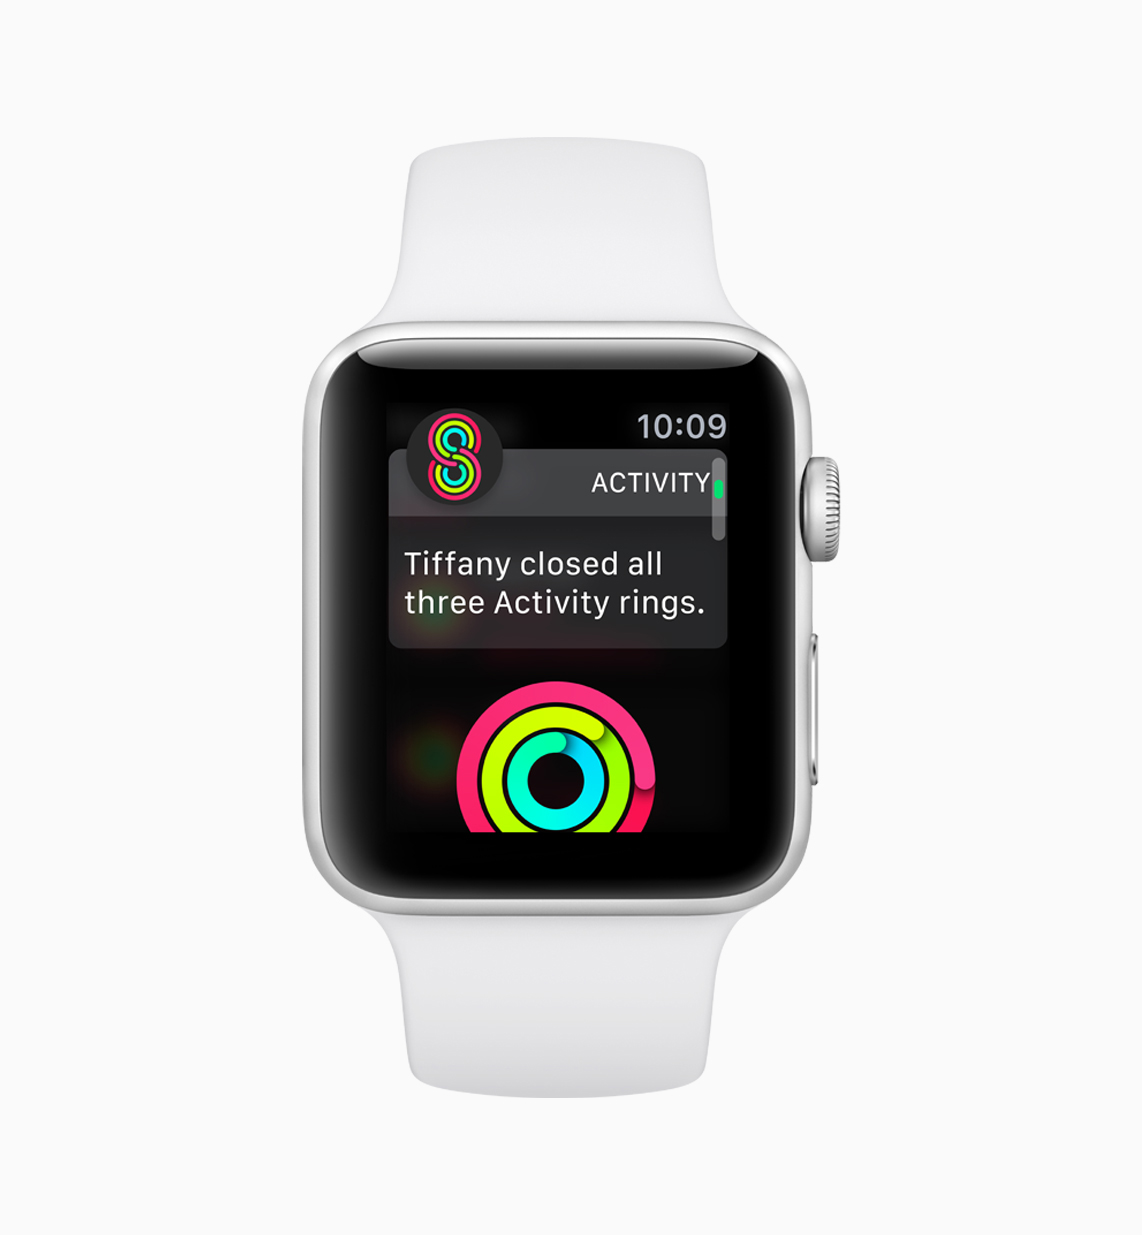 Example of activities app on watchOS